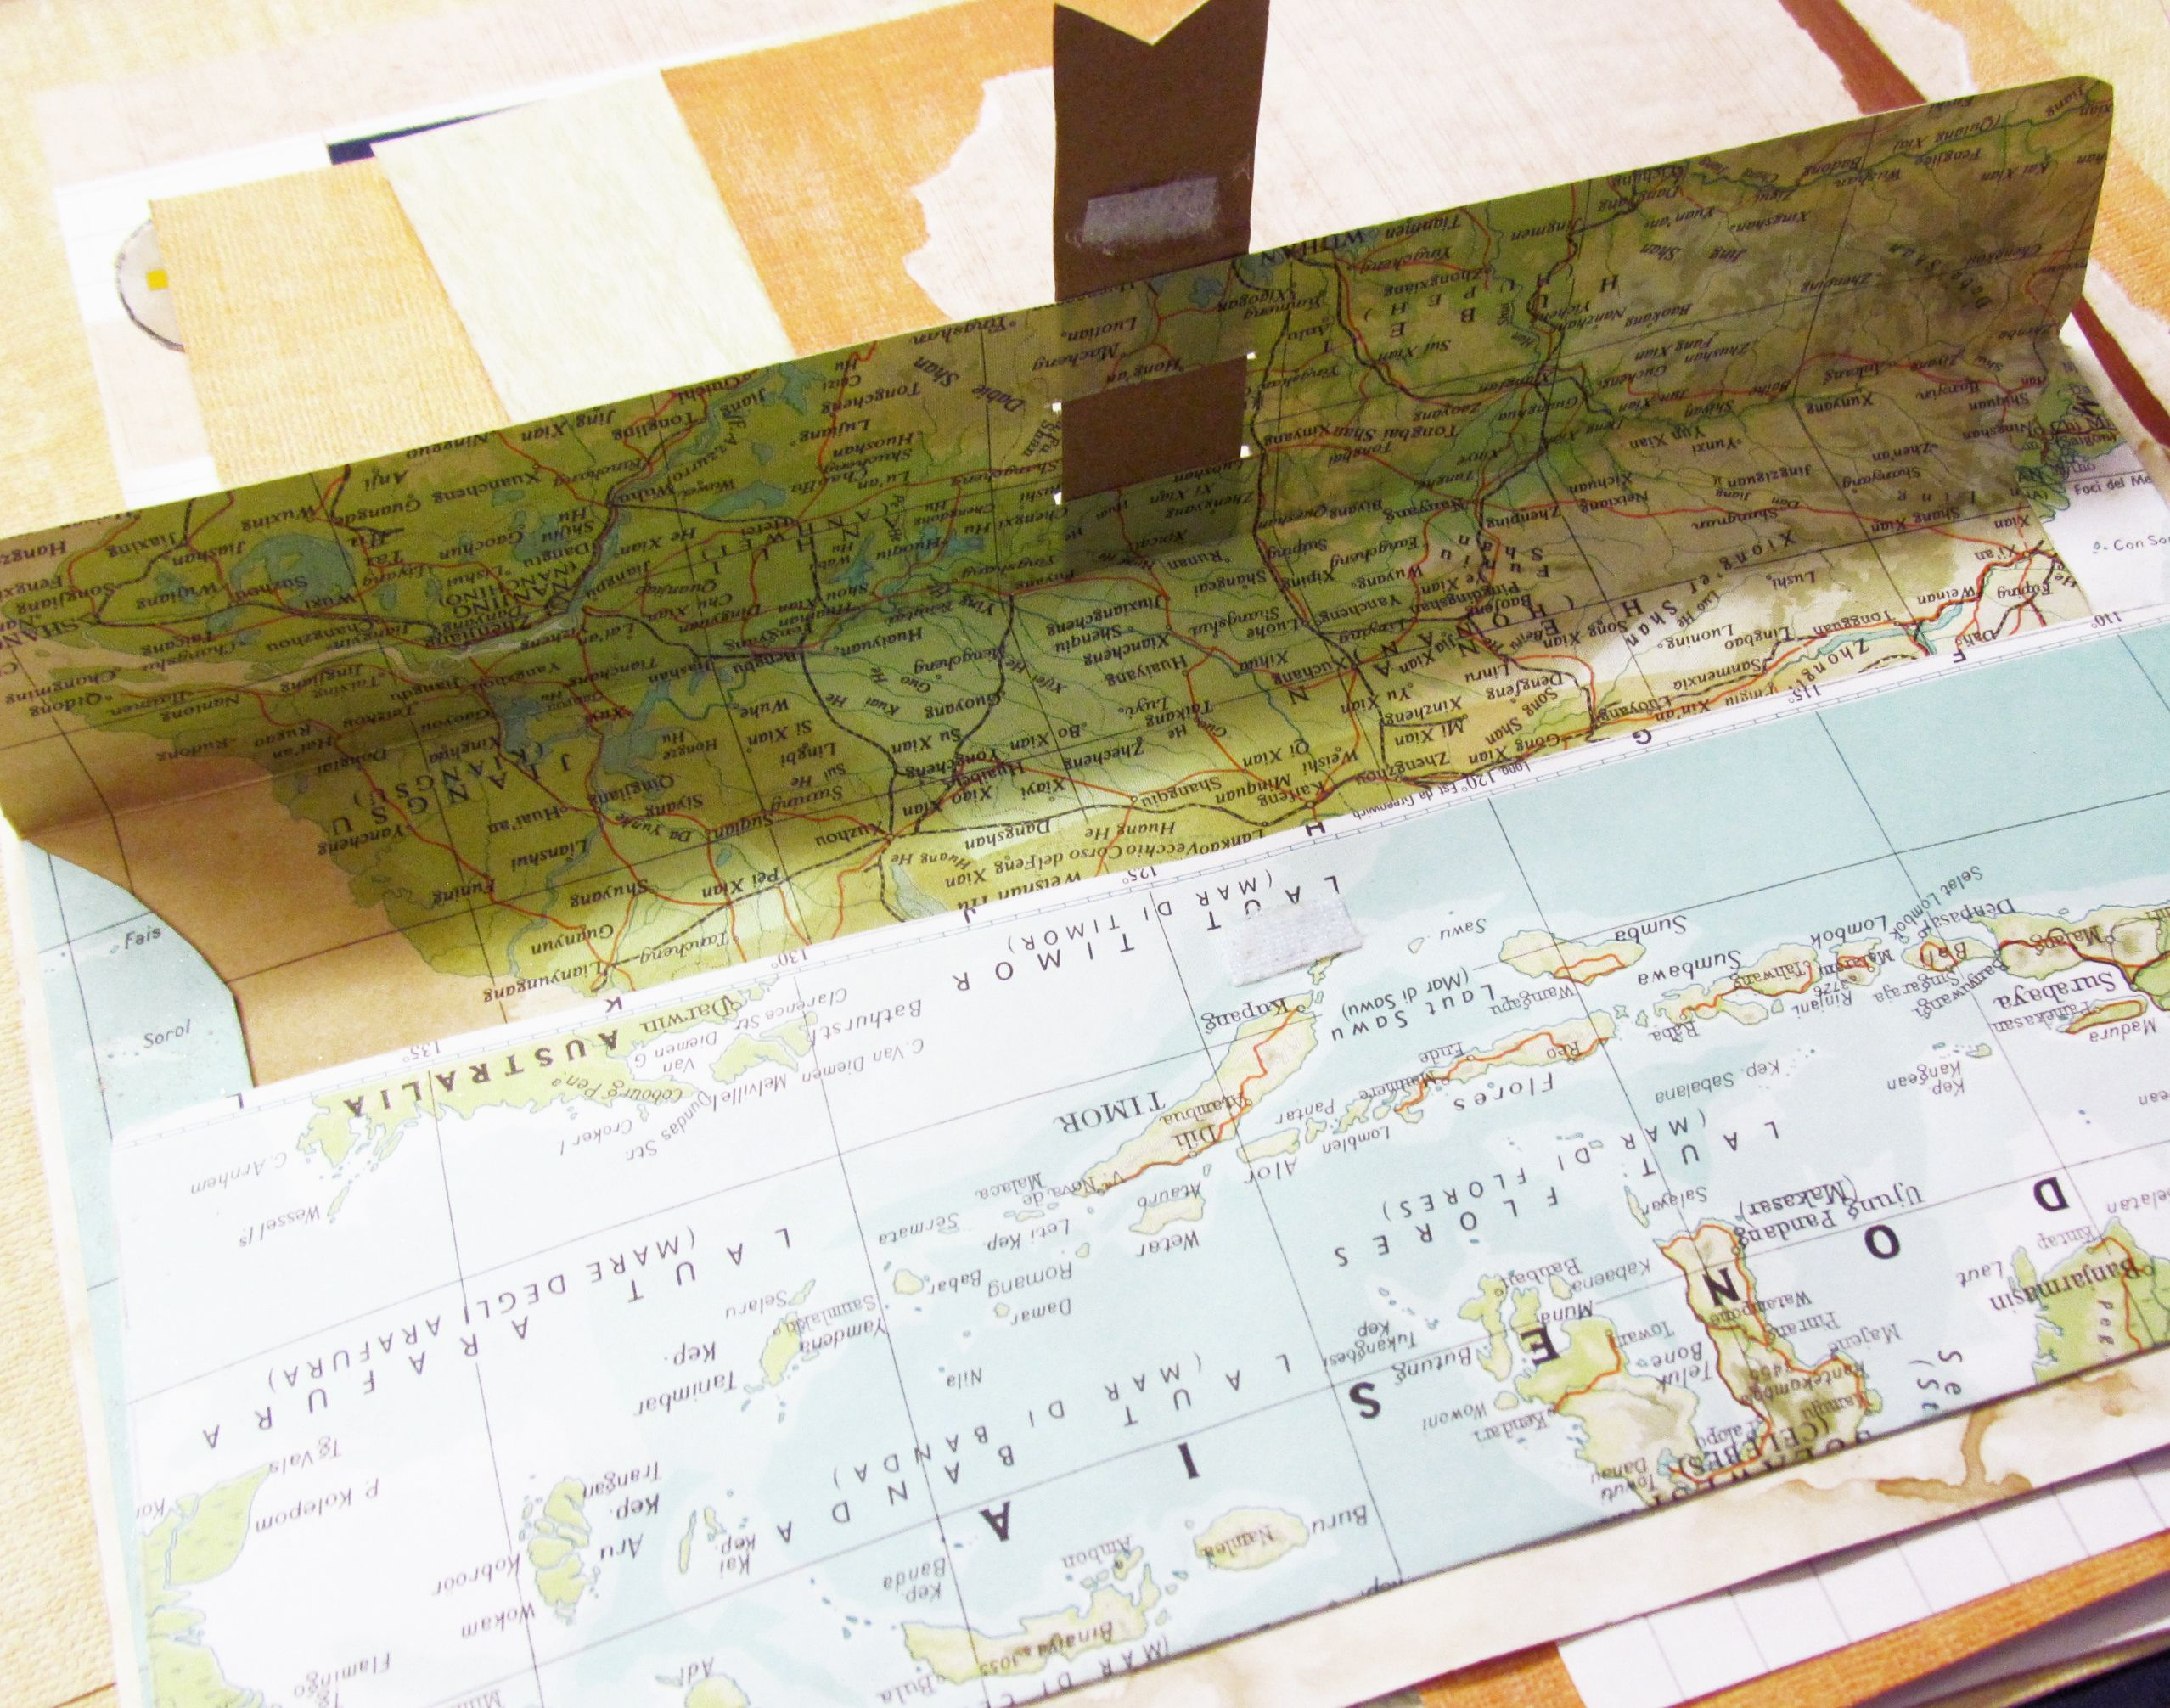 Crafty envelope made with old map to store memories, perfect page of a travel journal.